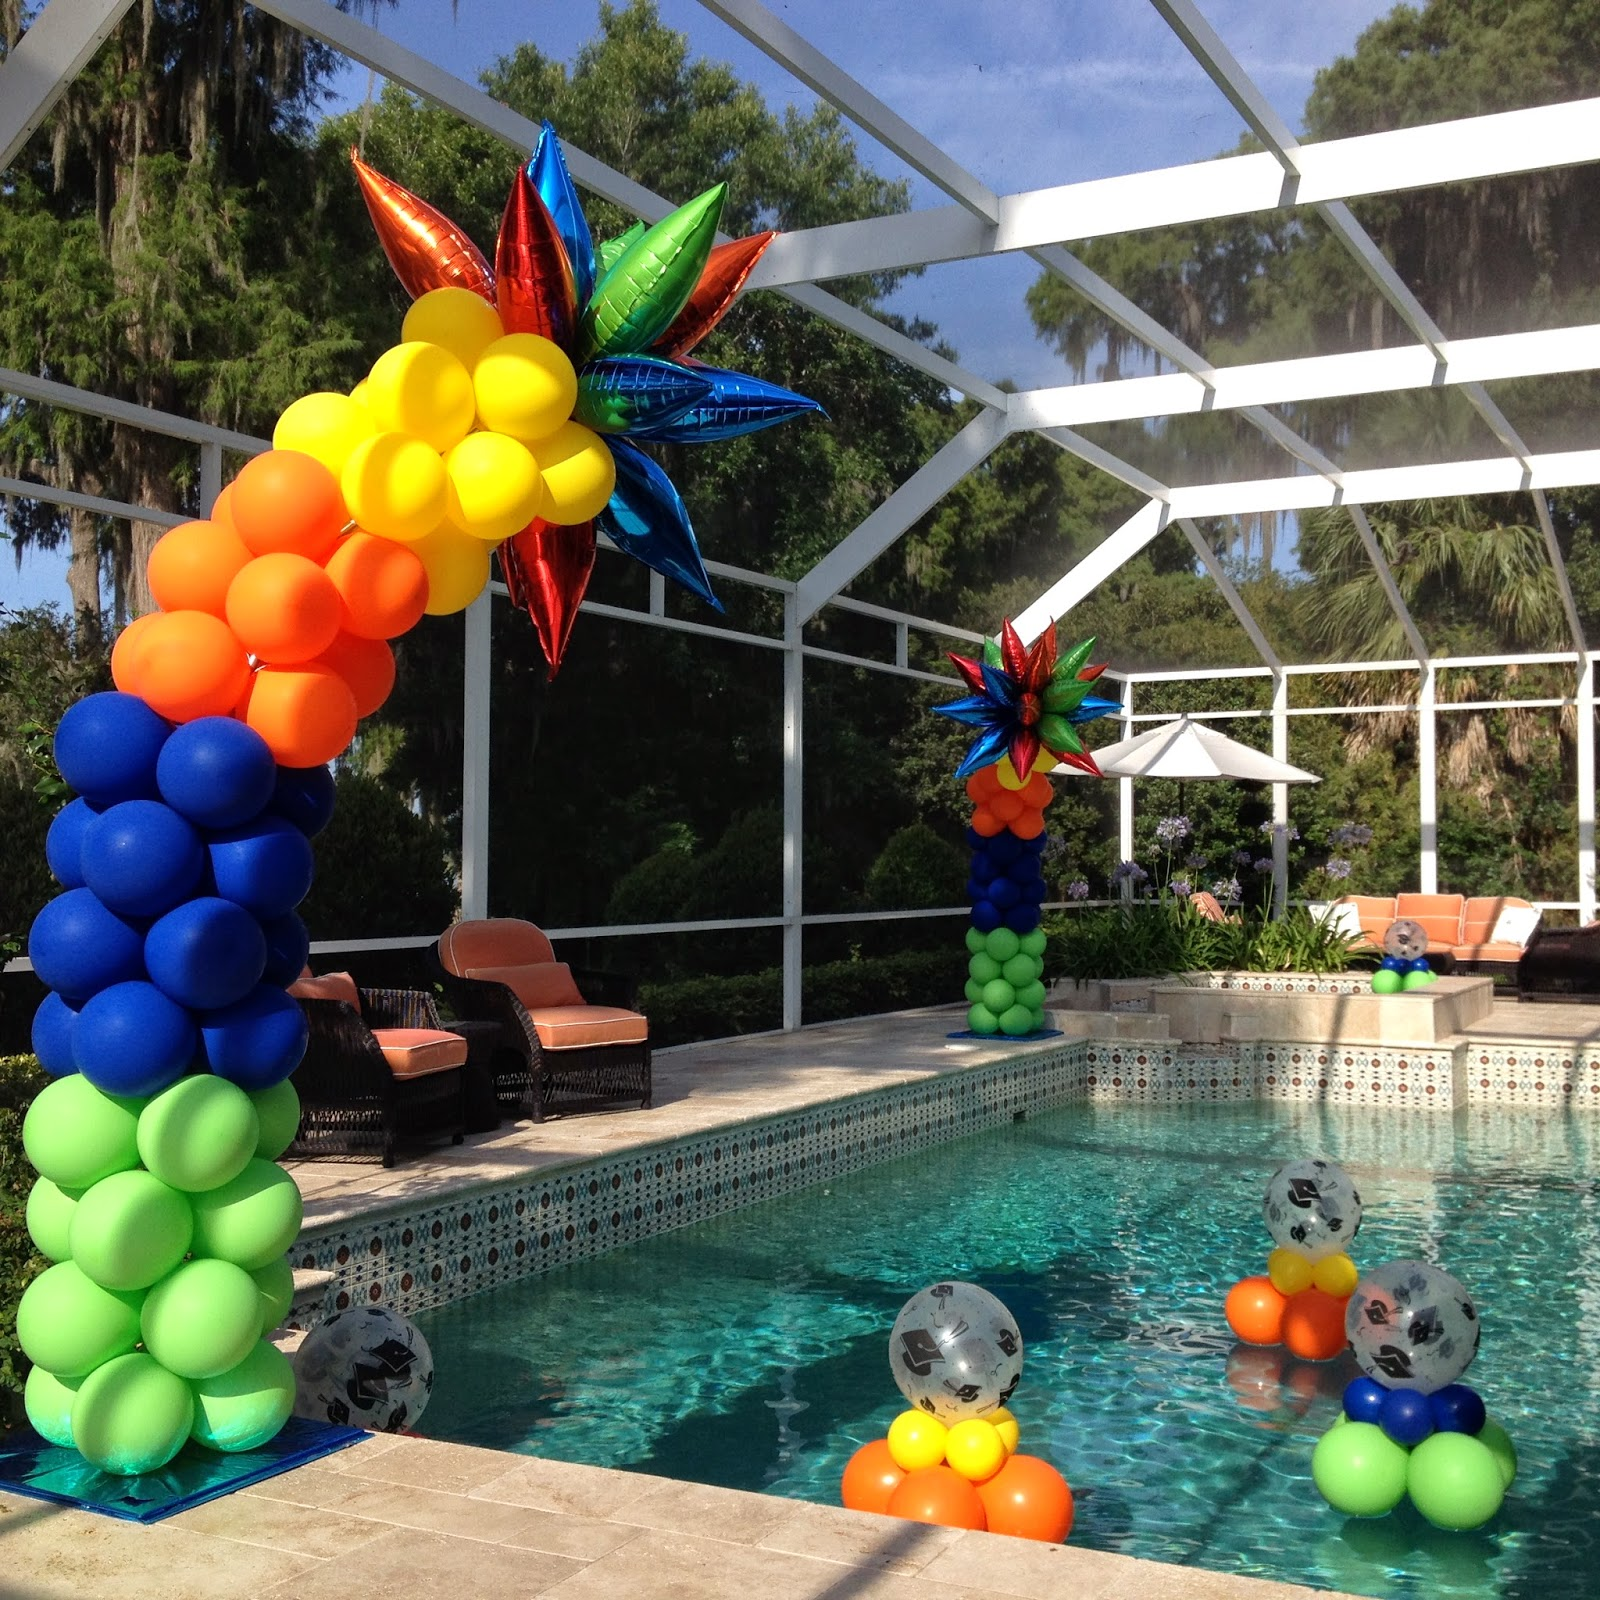 Party People Event Decorating Company Colorful Graduation Pool Party Winter Haven Florida On